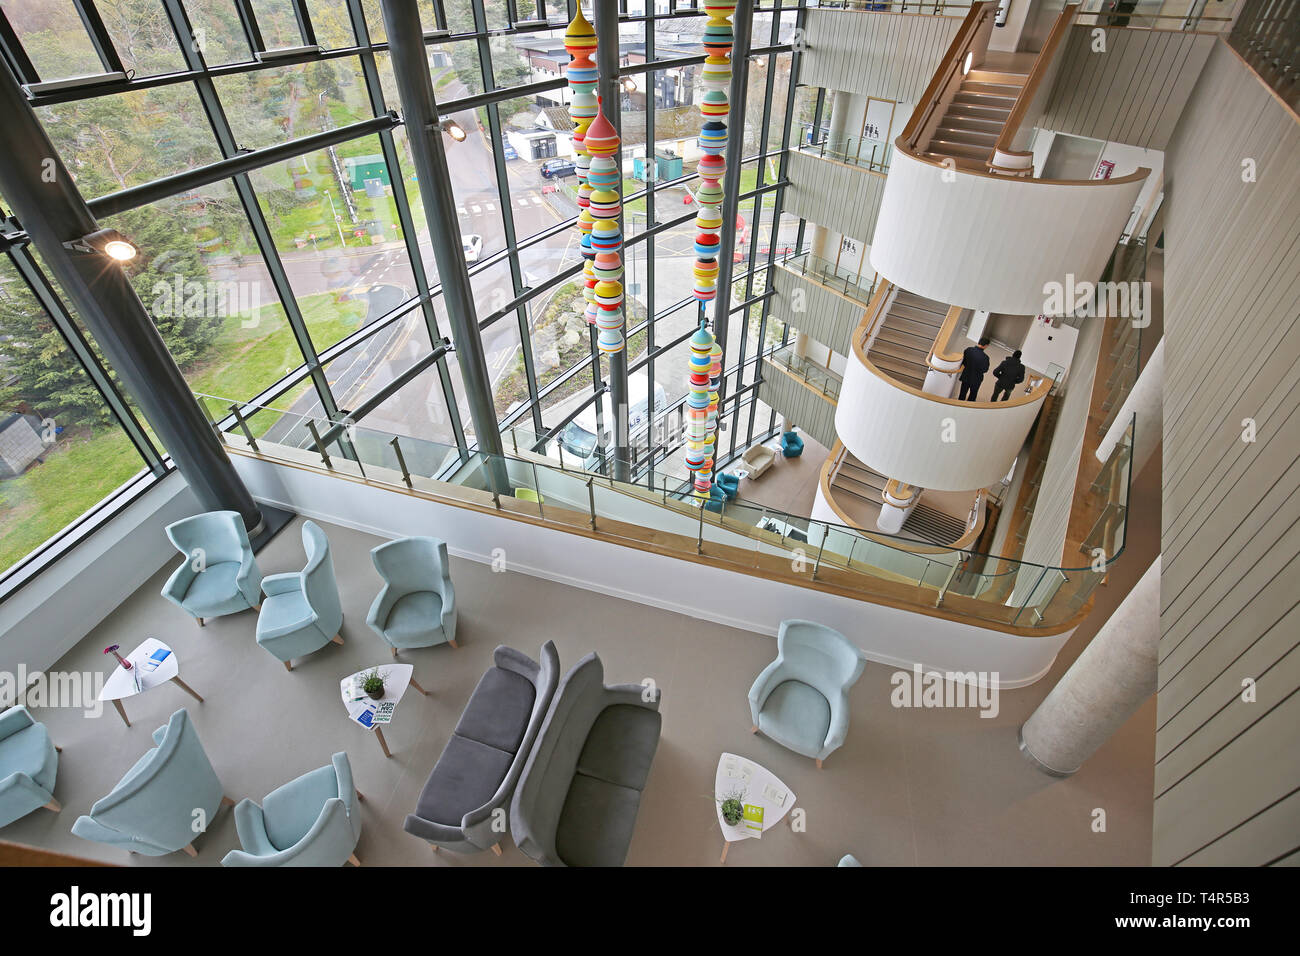 Interior of the atrium in the new Stanmore Building at the Royal National Orthopaedic Hospital in Stanmore, north London, UK - Stock Image